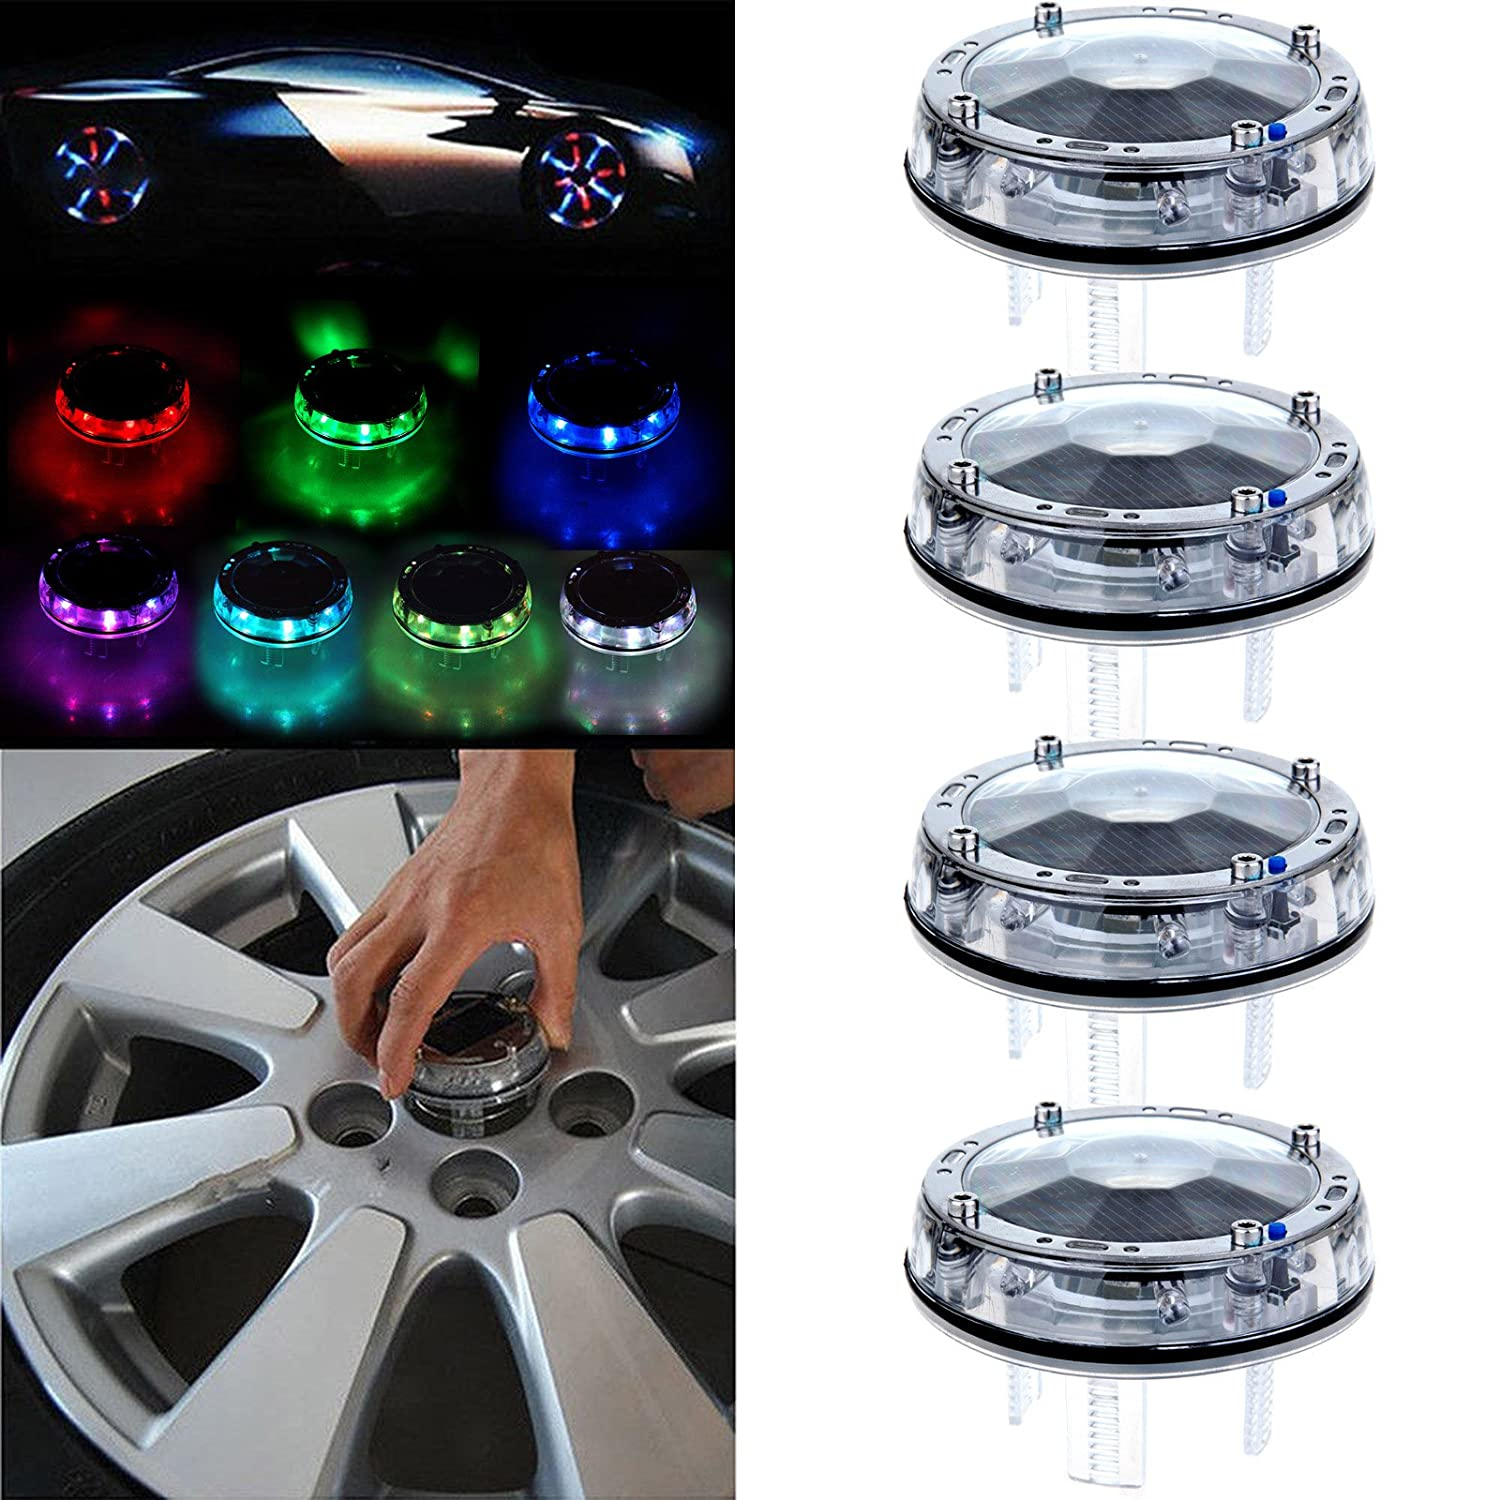 cciyu 4 Pack Car Wheel Rim Light Waterproof Solar Energy LED Flashing Lights Car Tyre Decoration Accessories 800235-5210-1132391